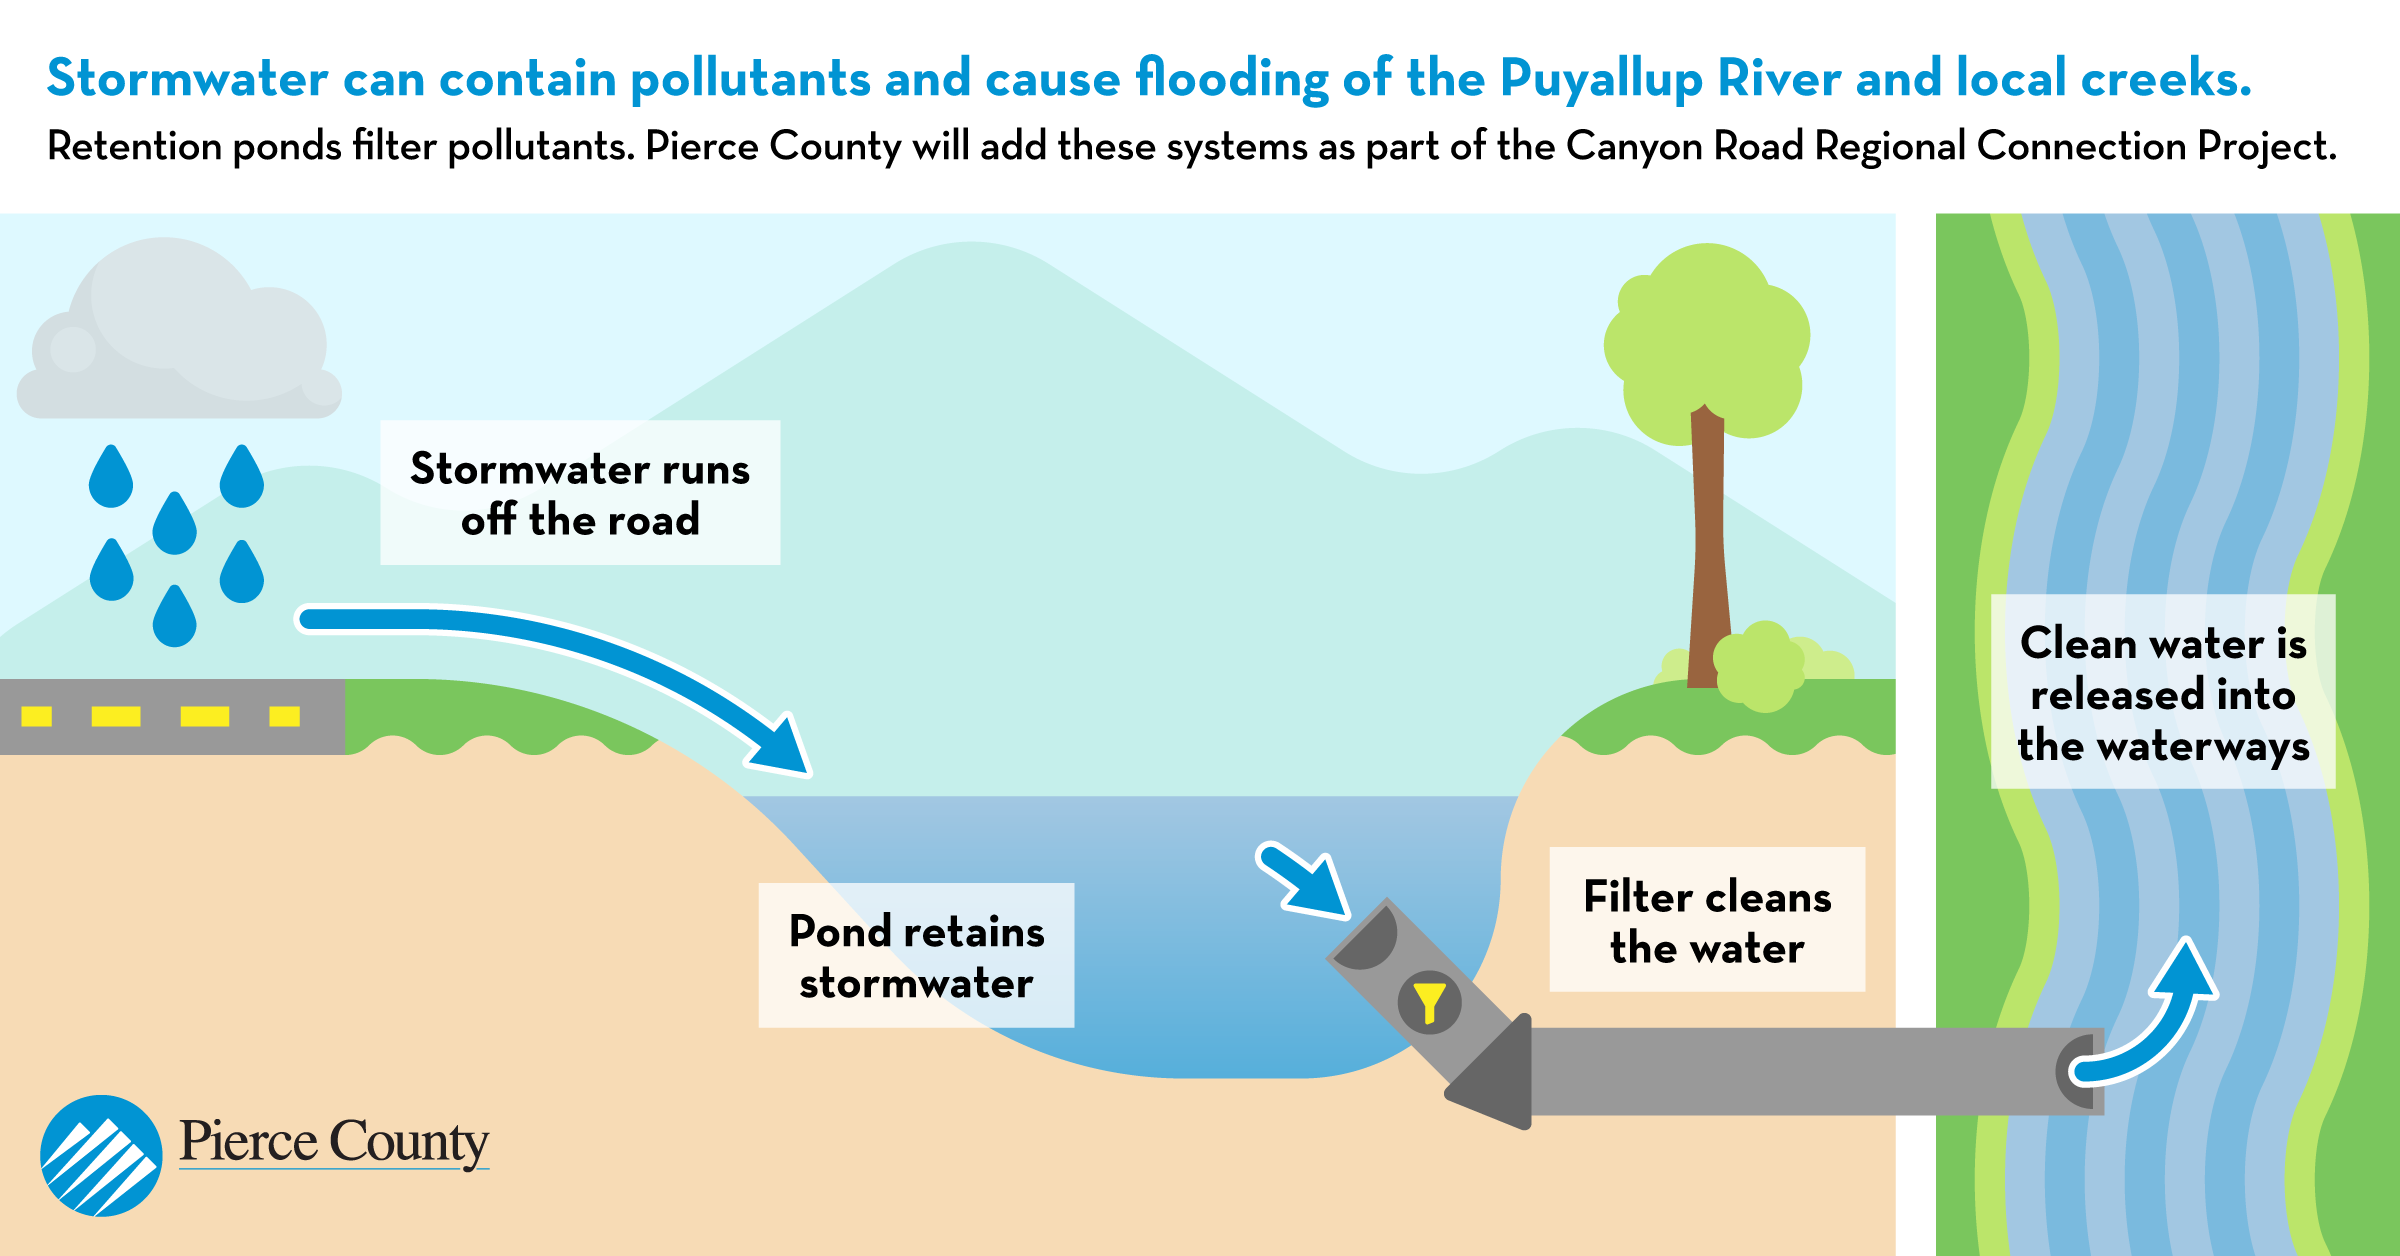 This graphic shows how stormwater will be collected in retention ponds and bioswales and cleaned by filters before being released into Clarks Creek or the Puyallup River.